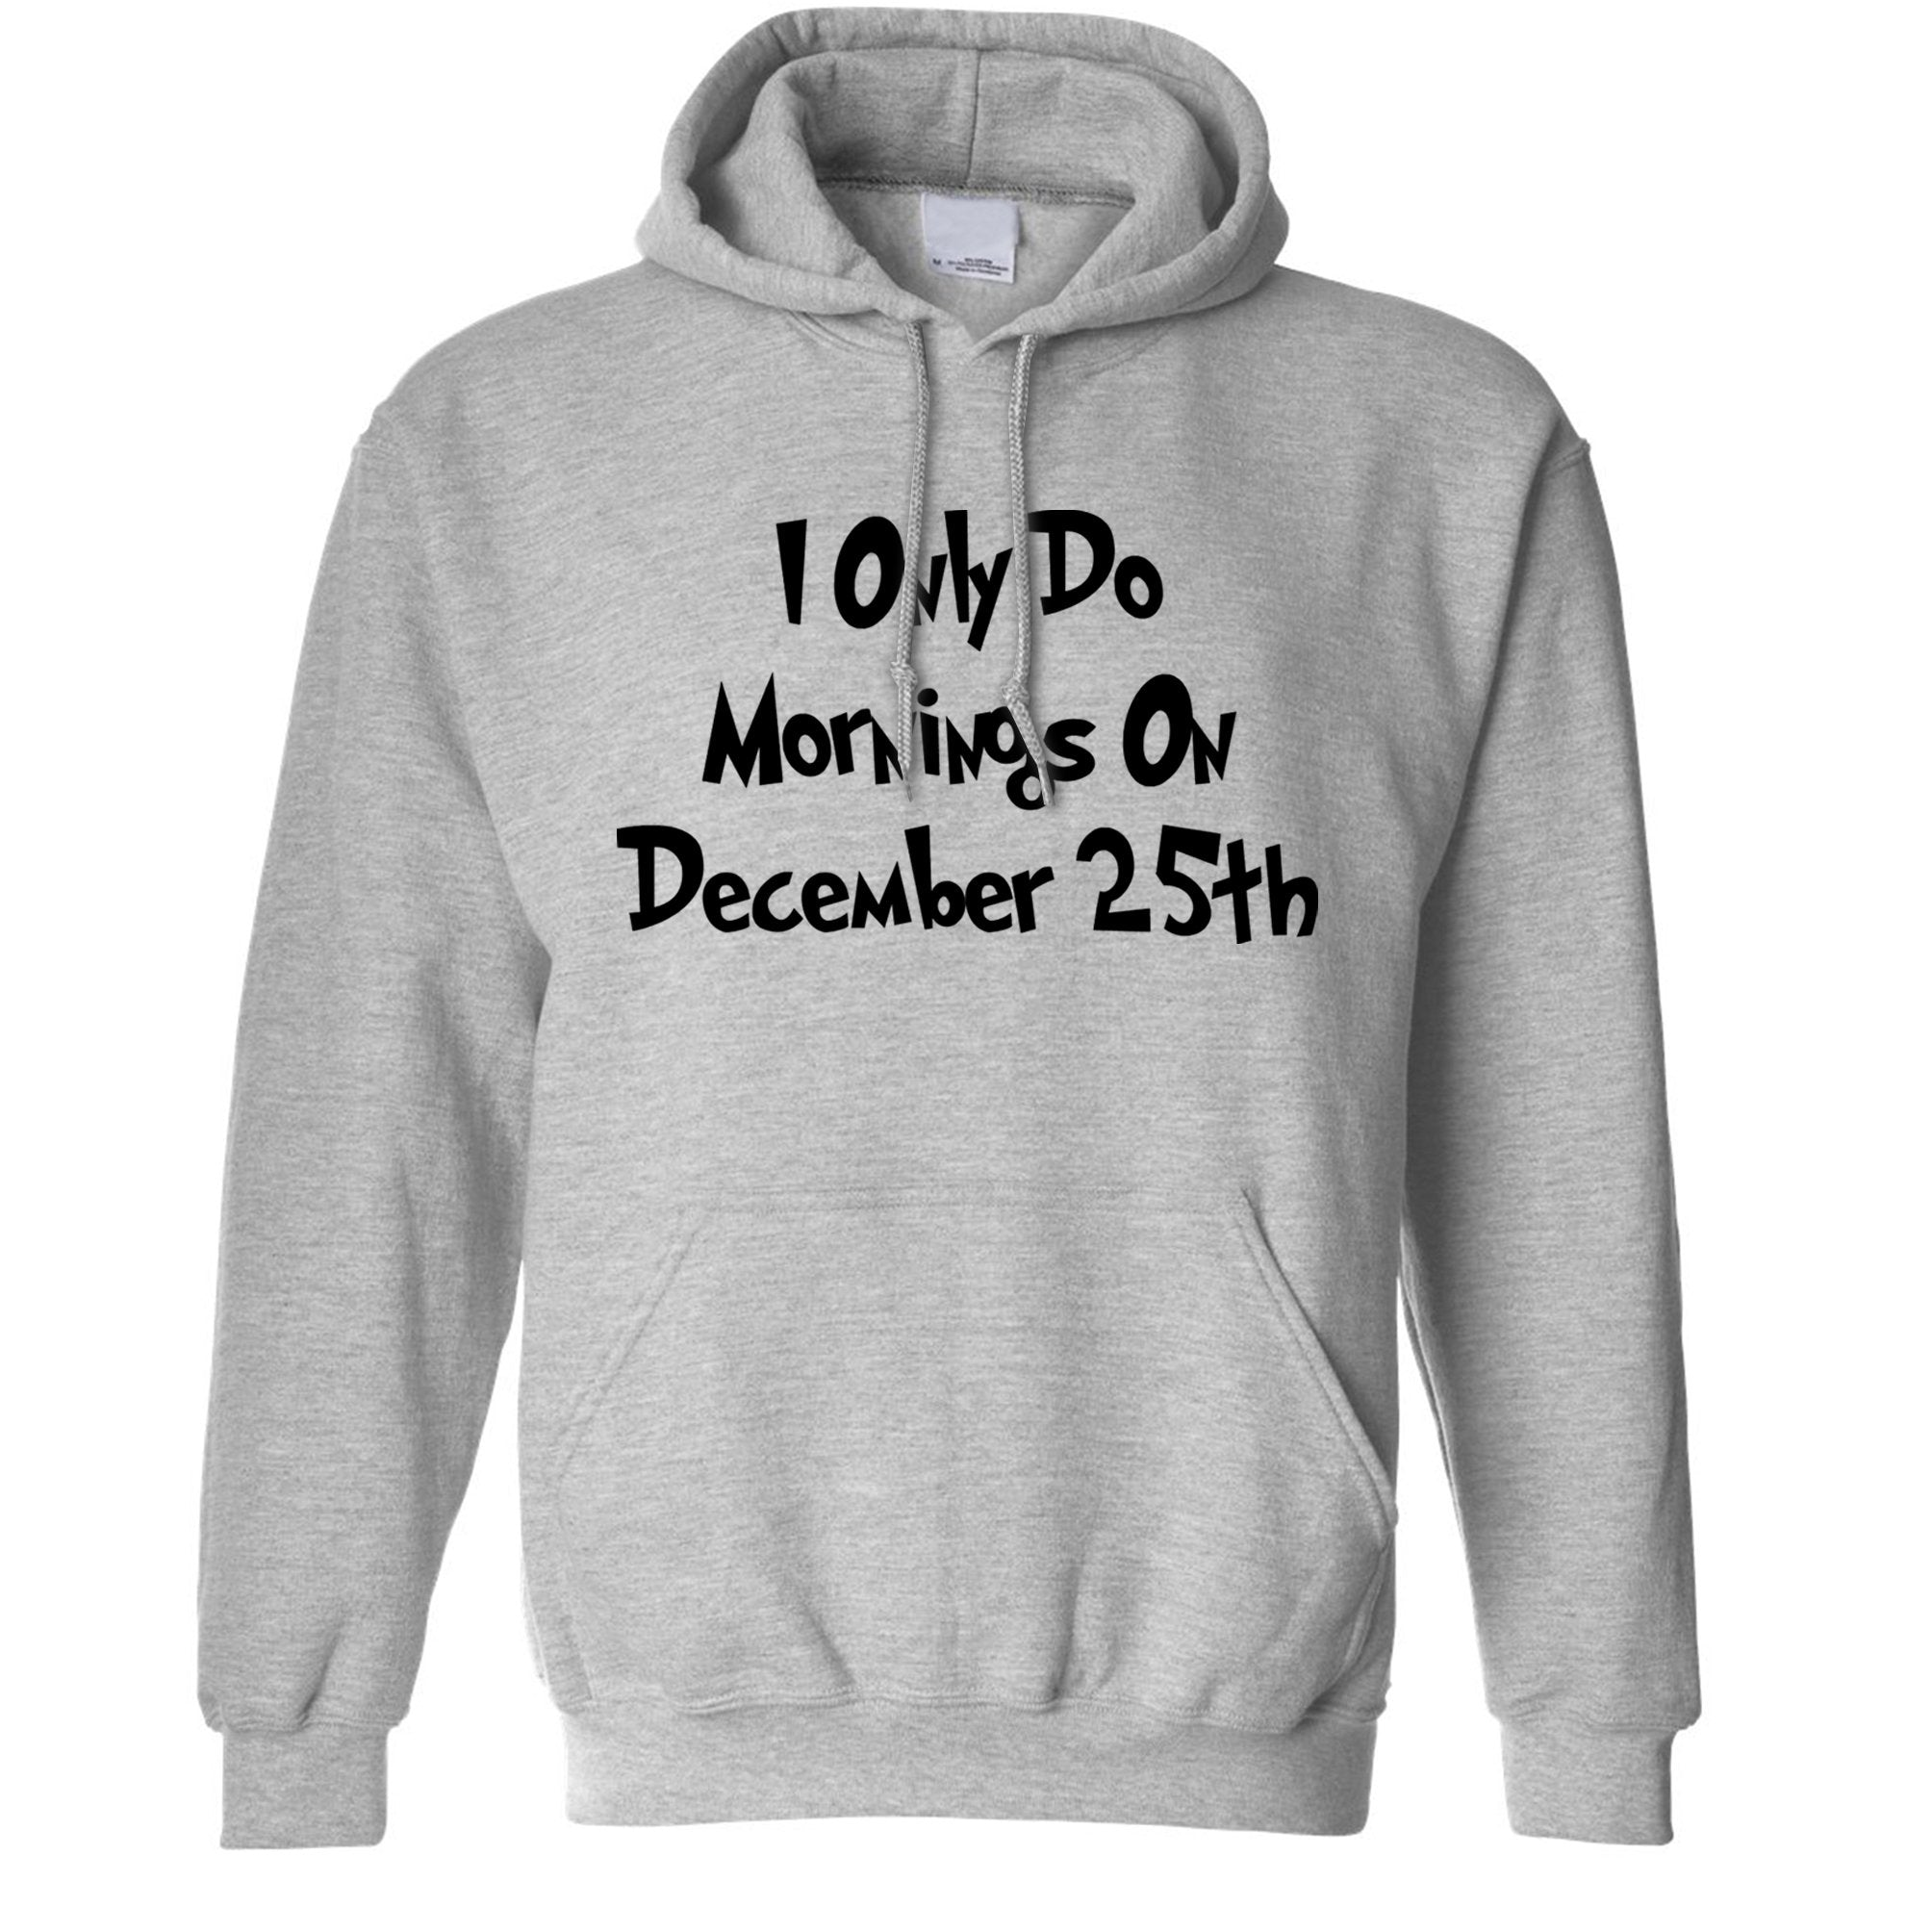 Joke Hoodie I Only Do Mornings On December 25th Hooded Jumper